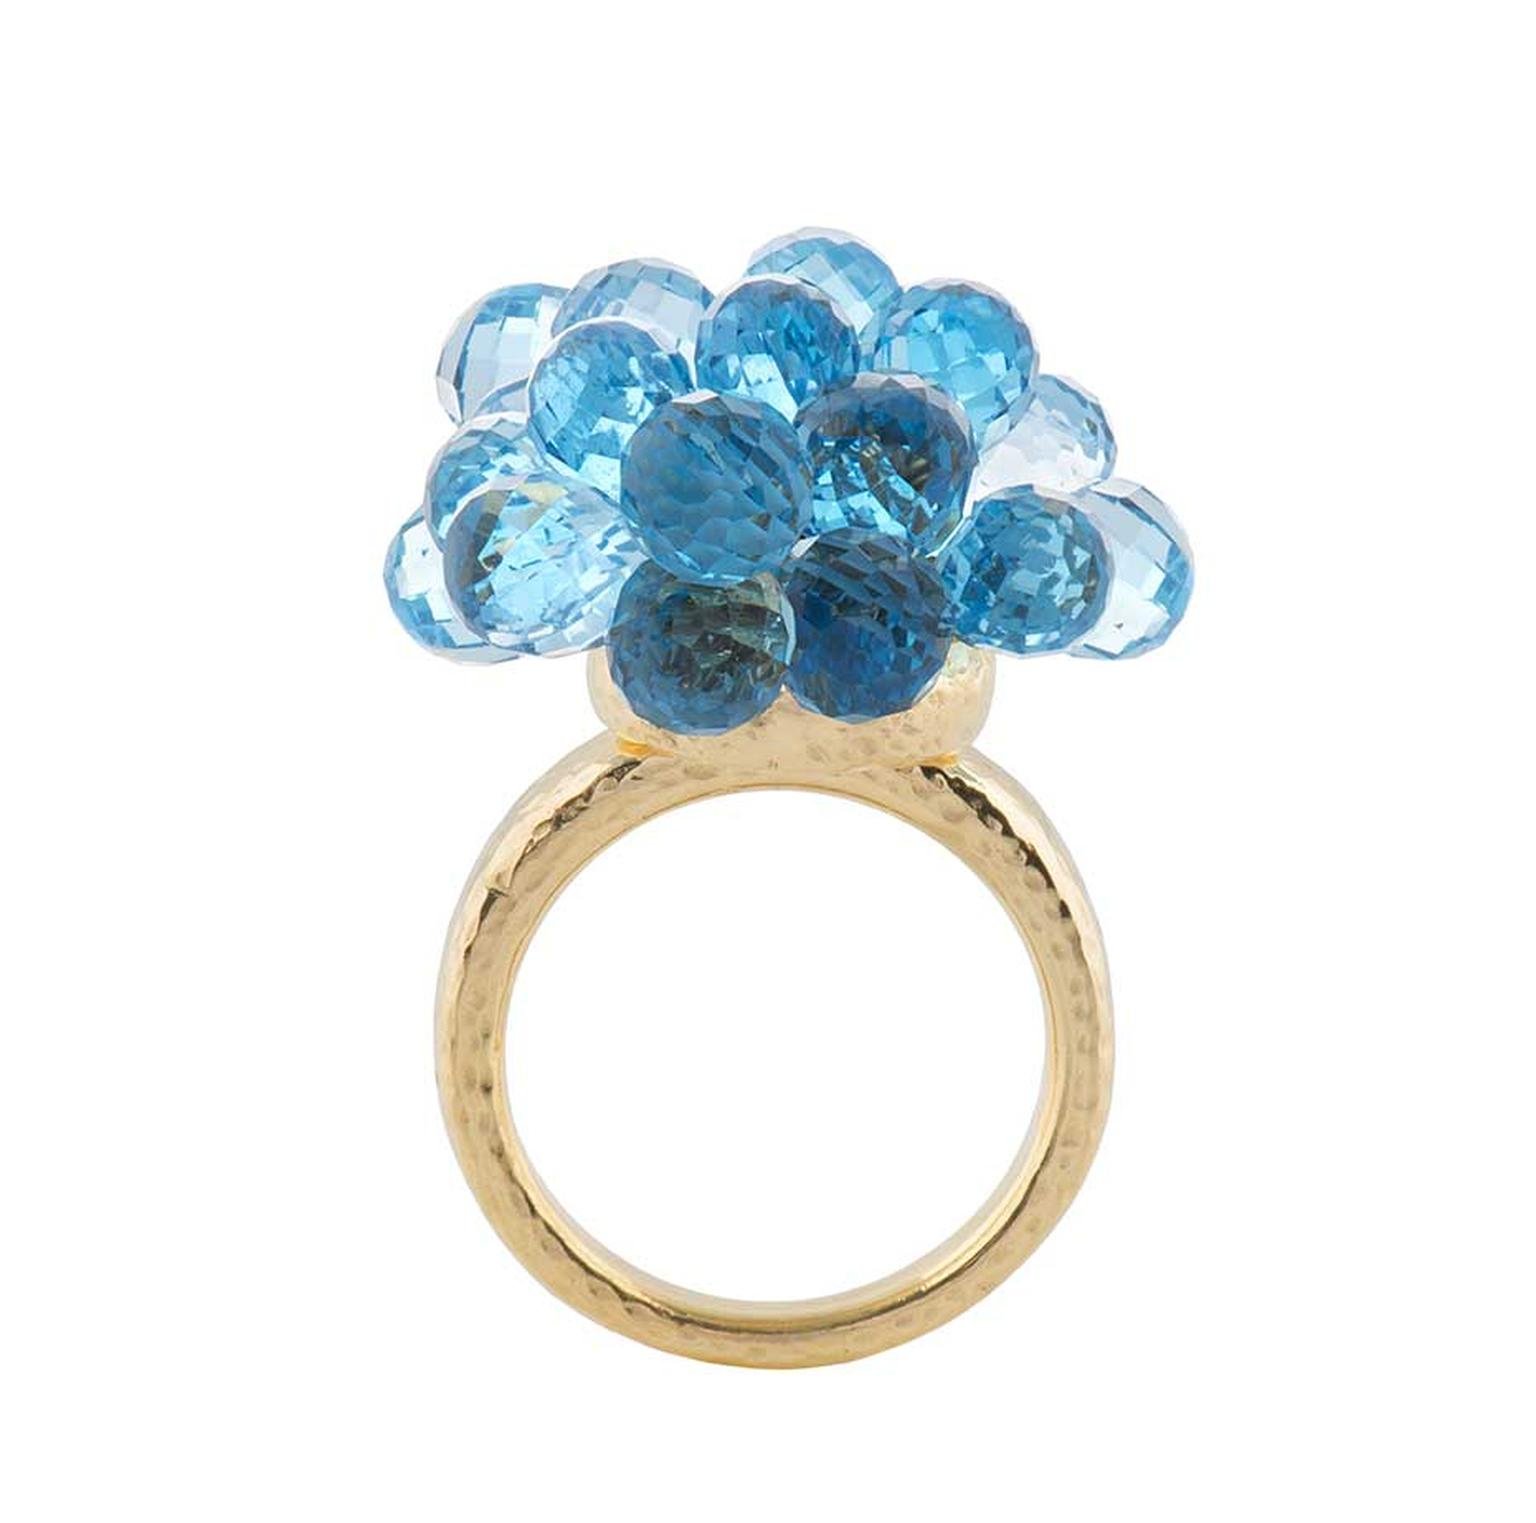 Blue topaz jewellery: the cool November birthstone for a chilly month